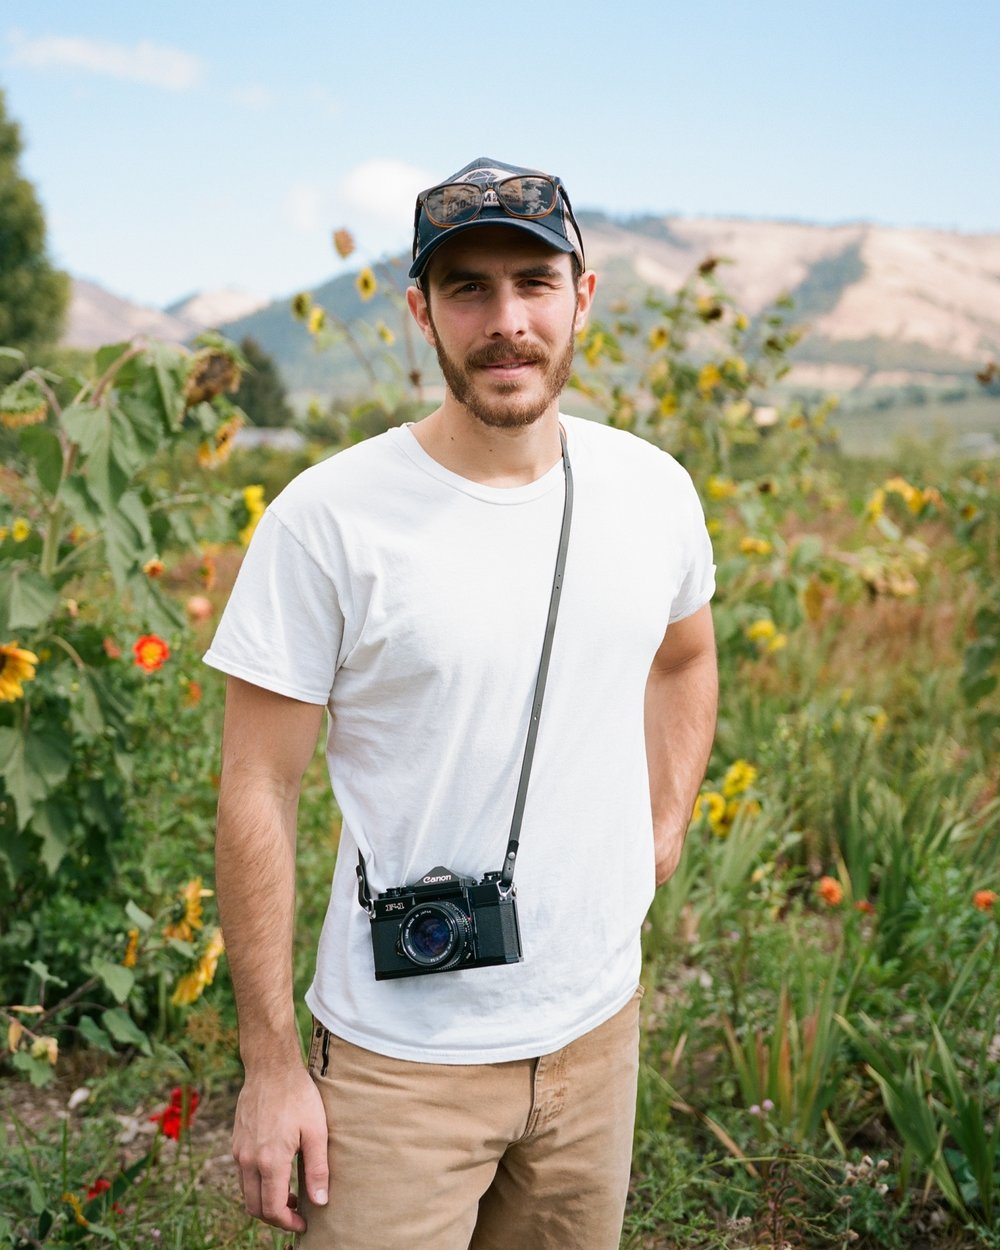 Jonathan Moore, Creative Director - The Beans and Rice Commercial Outdoor Adventure & Lifestyle Content